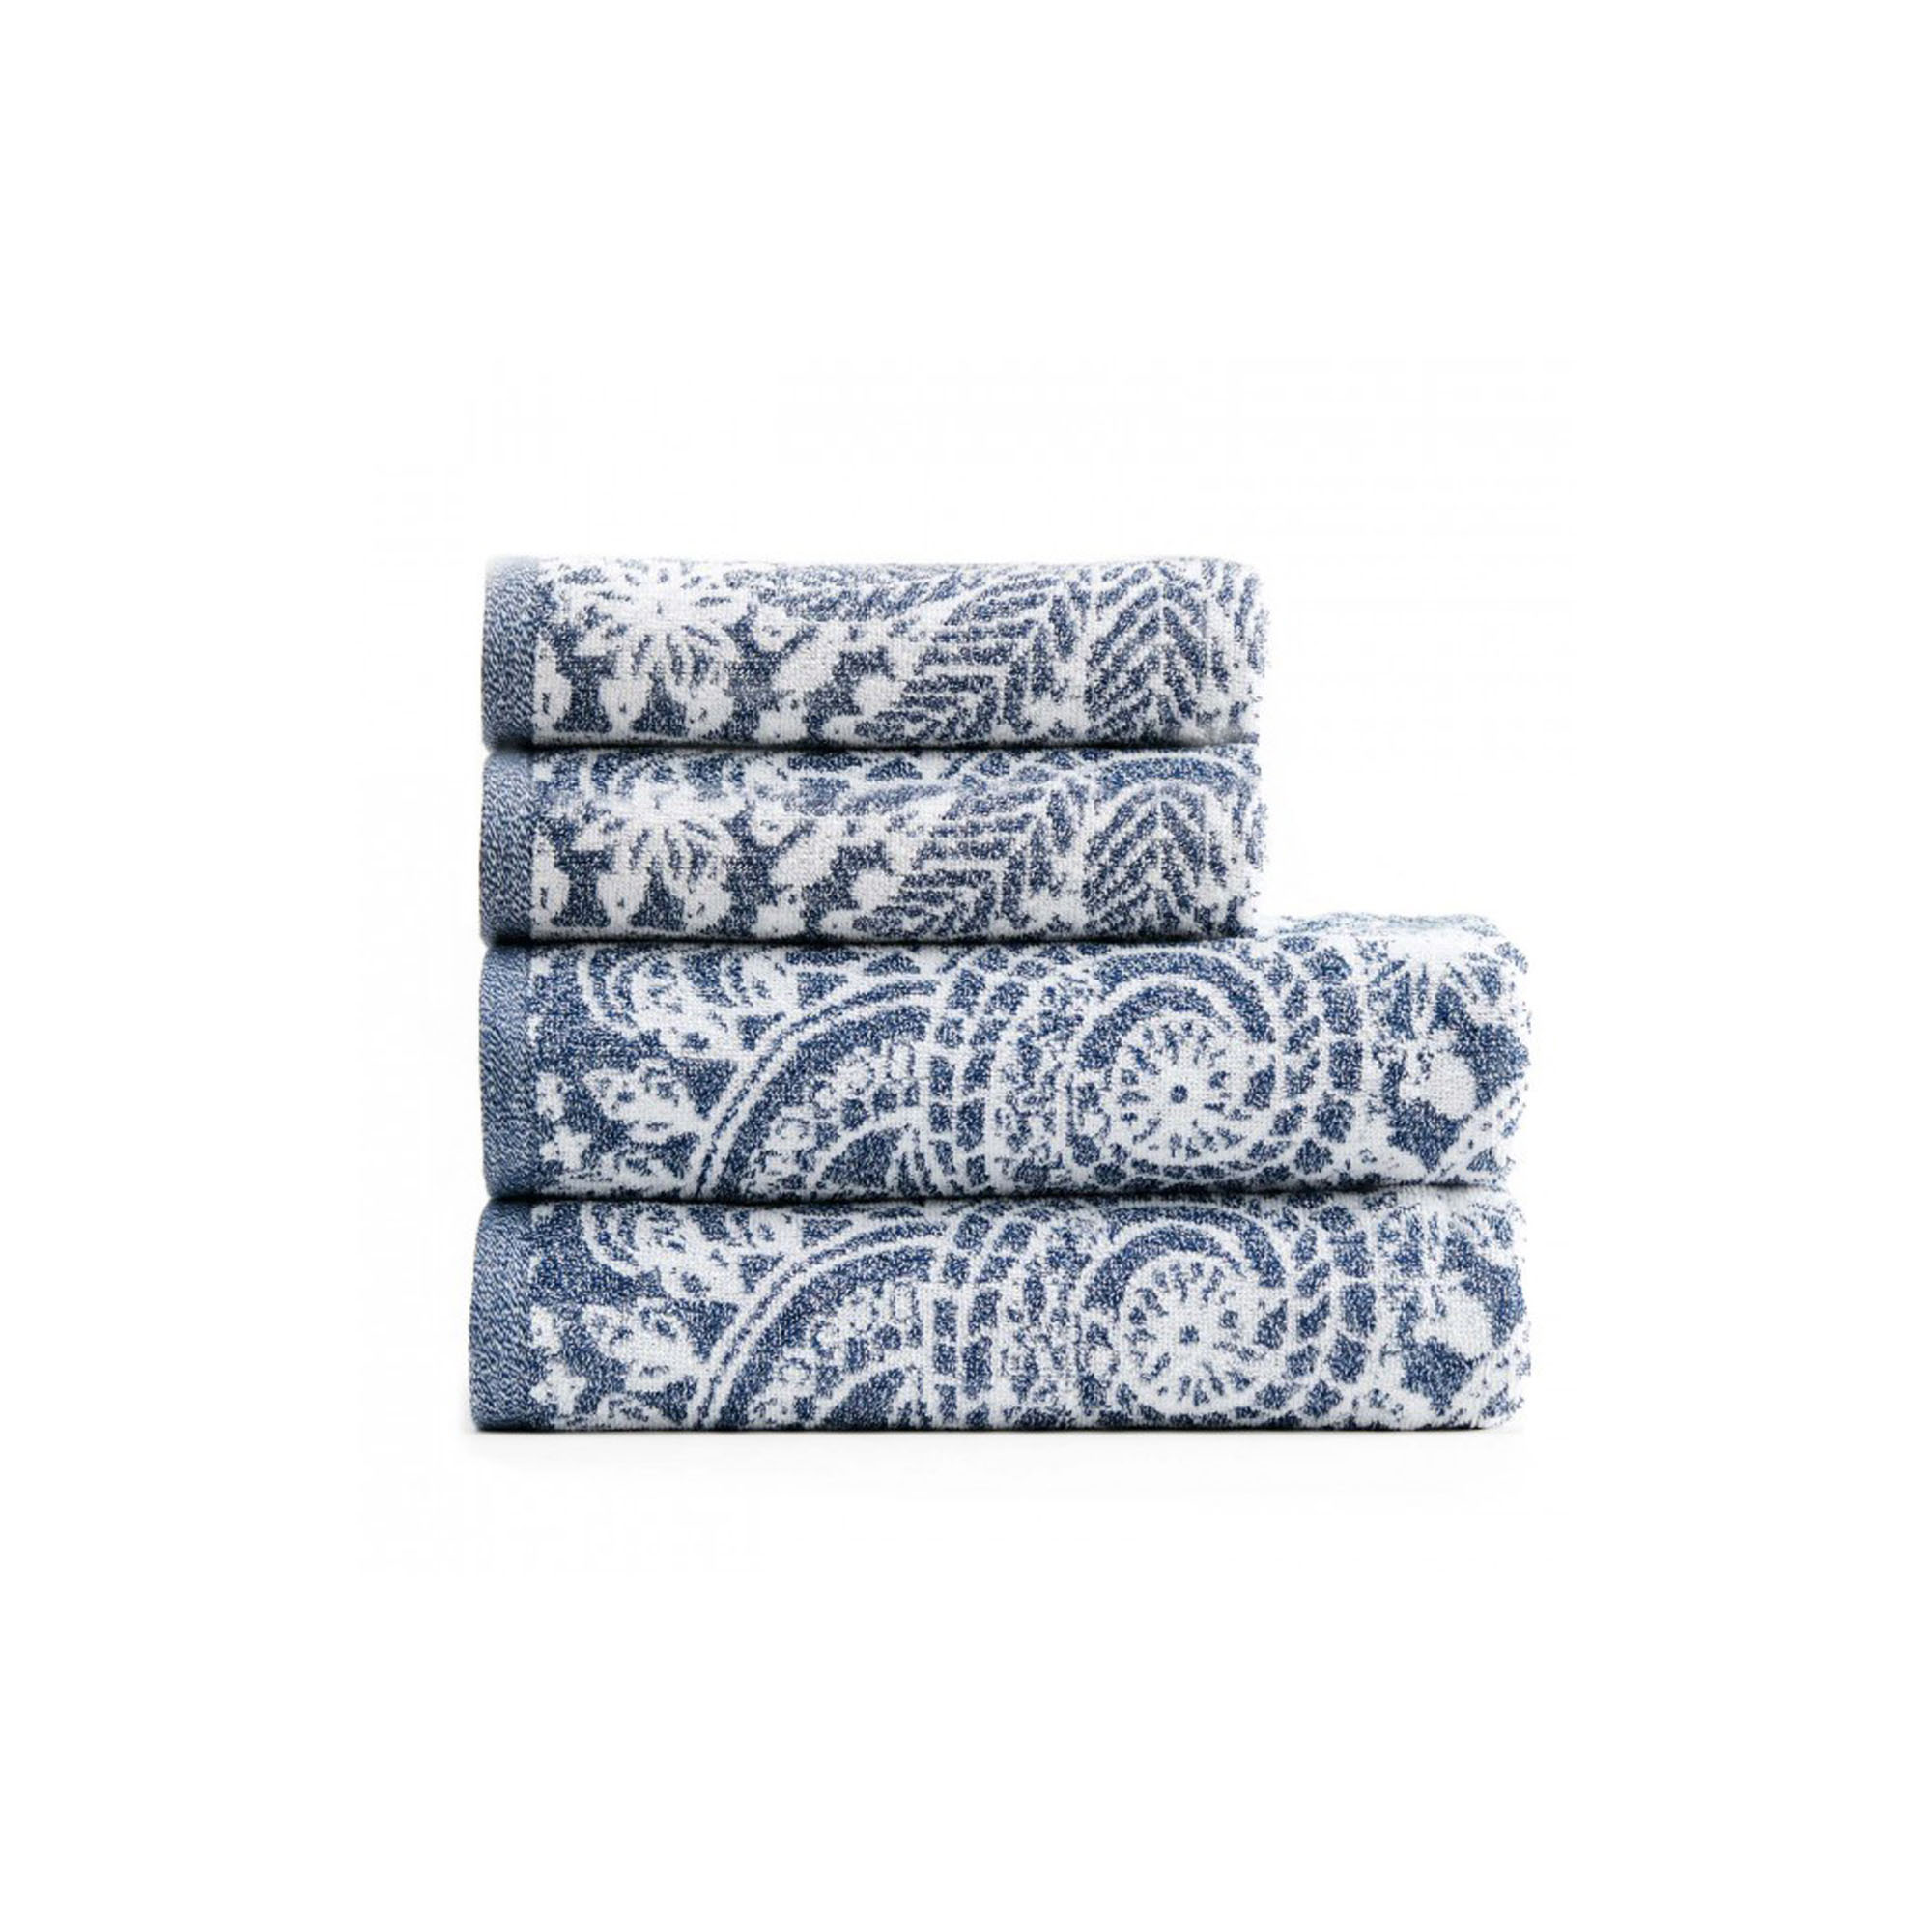 Terry towels made in organic cotton with a nice pattern. The set consists of two small towels and two shower towels. Delivered in a gift box.